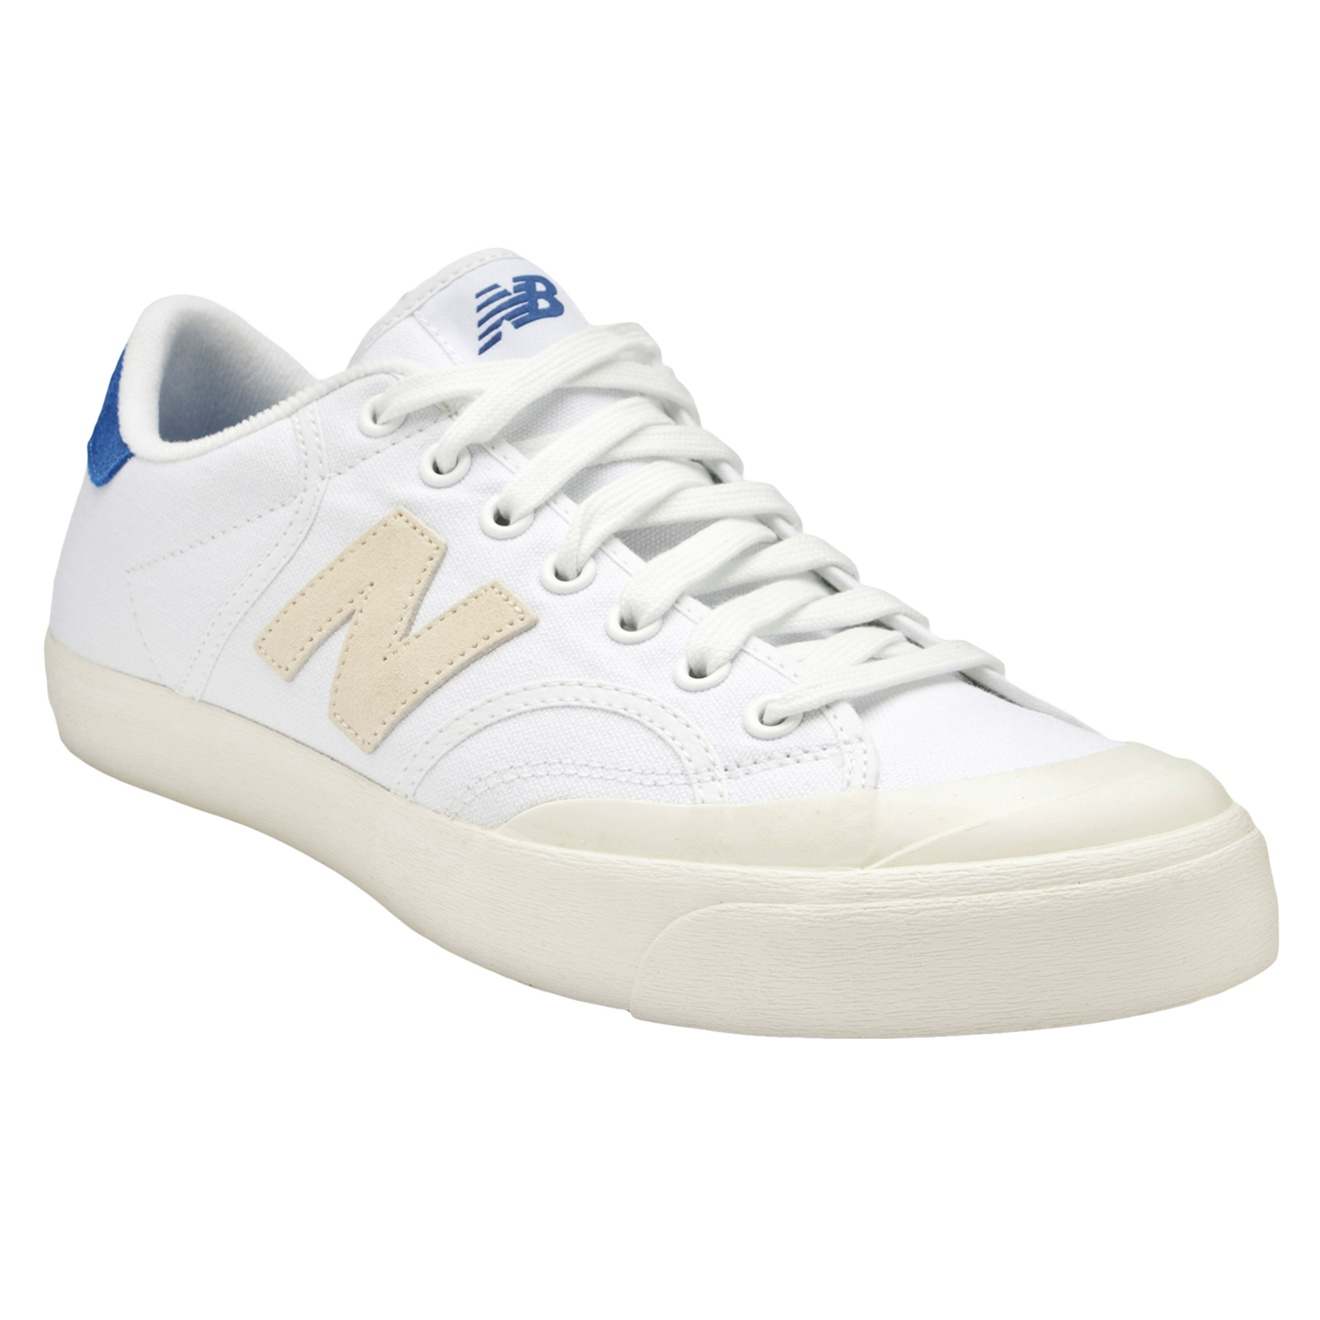 f3e0ebc4dd02 New Balance Pro-court Low Tops in White for Men - Lyst